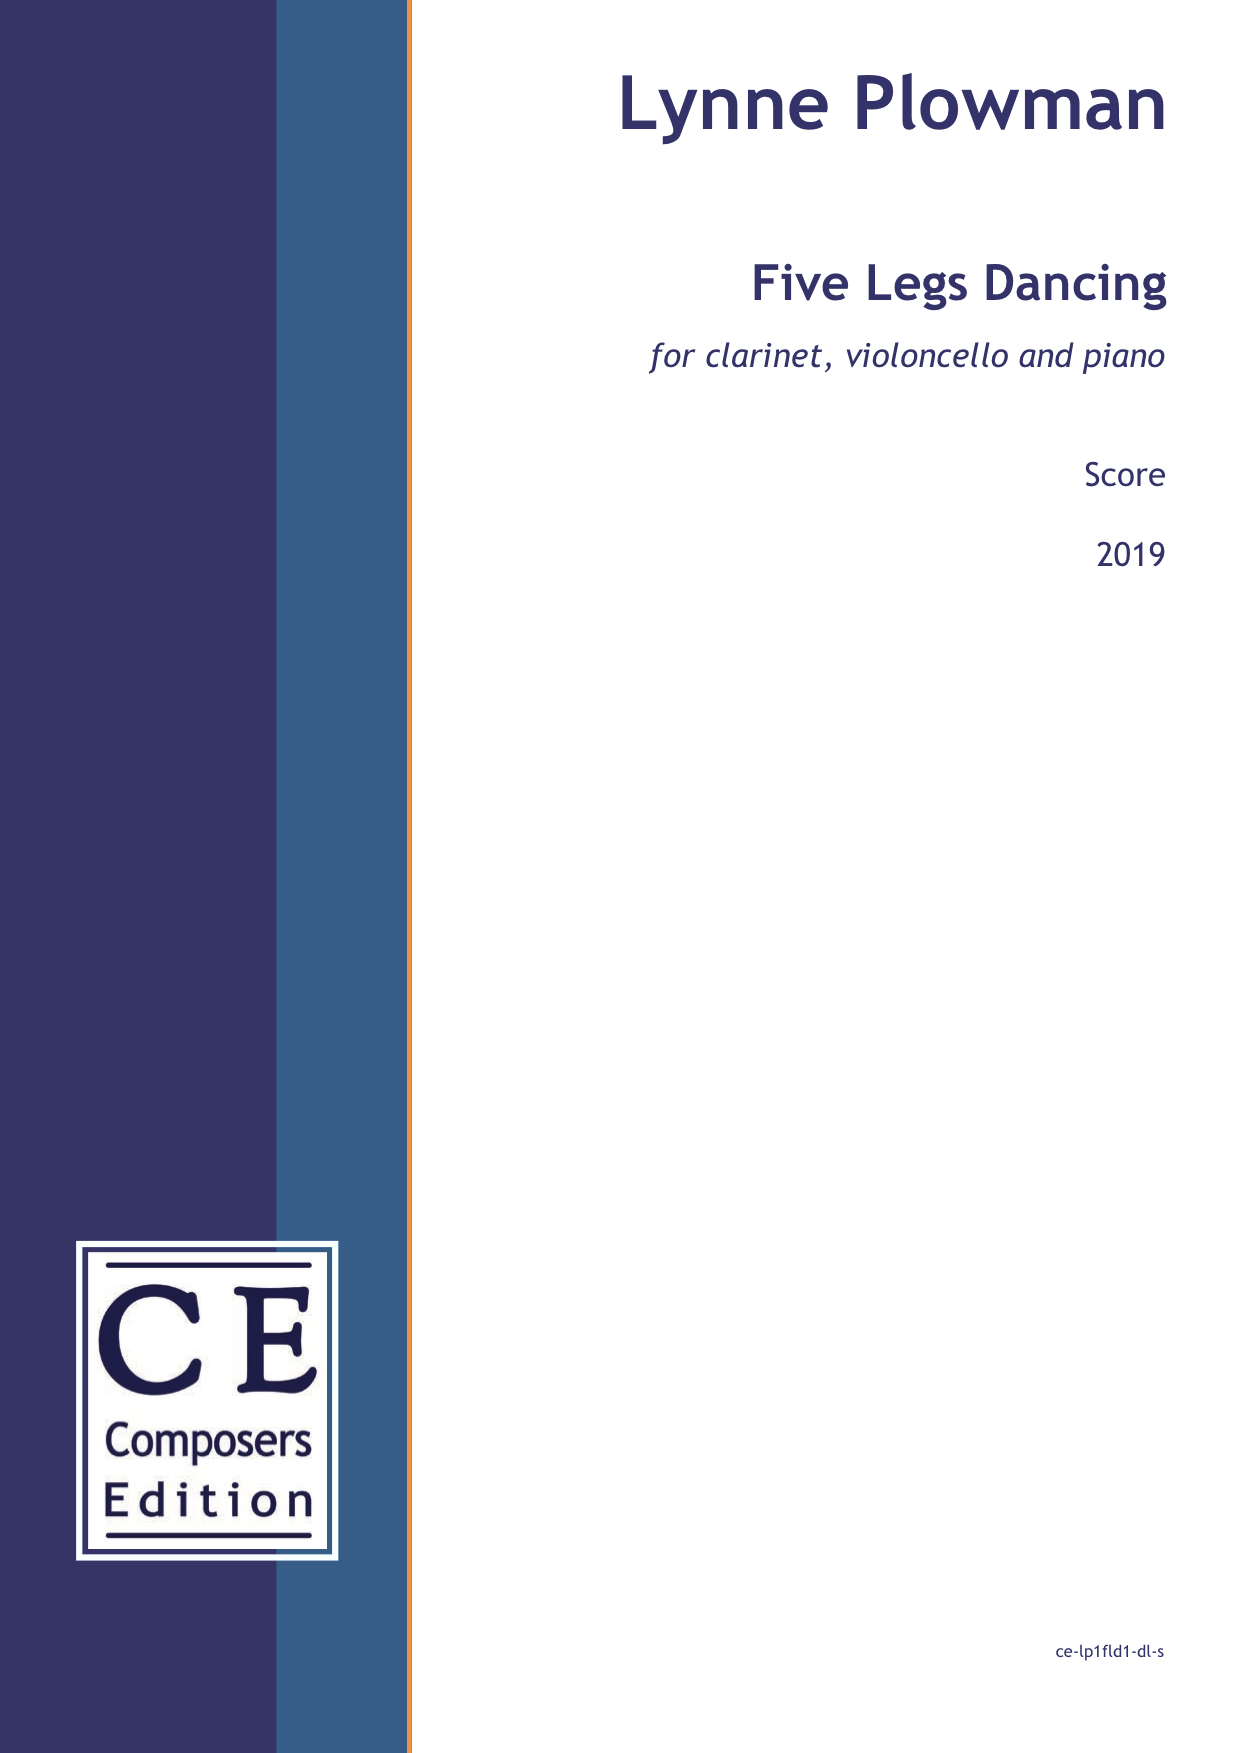 Lynne Plowman: Five Legs Dancing for clarinet, violoncello and piano